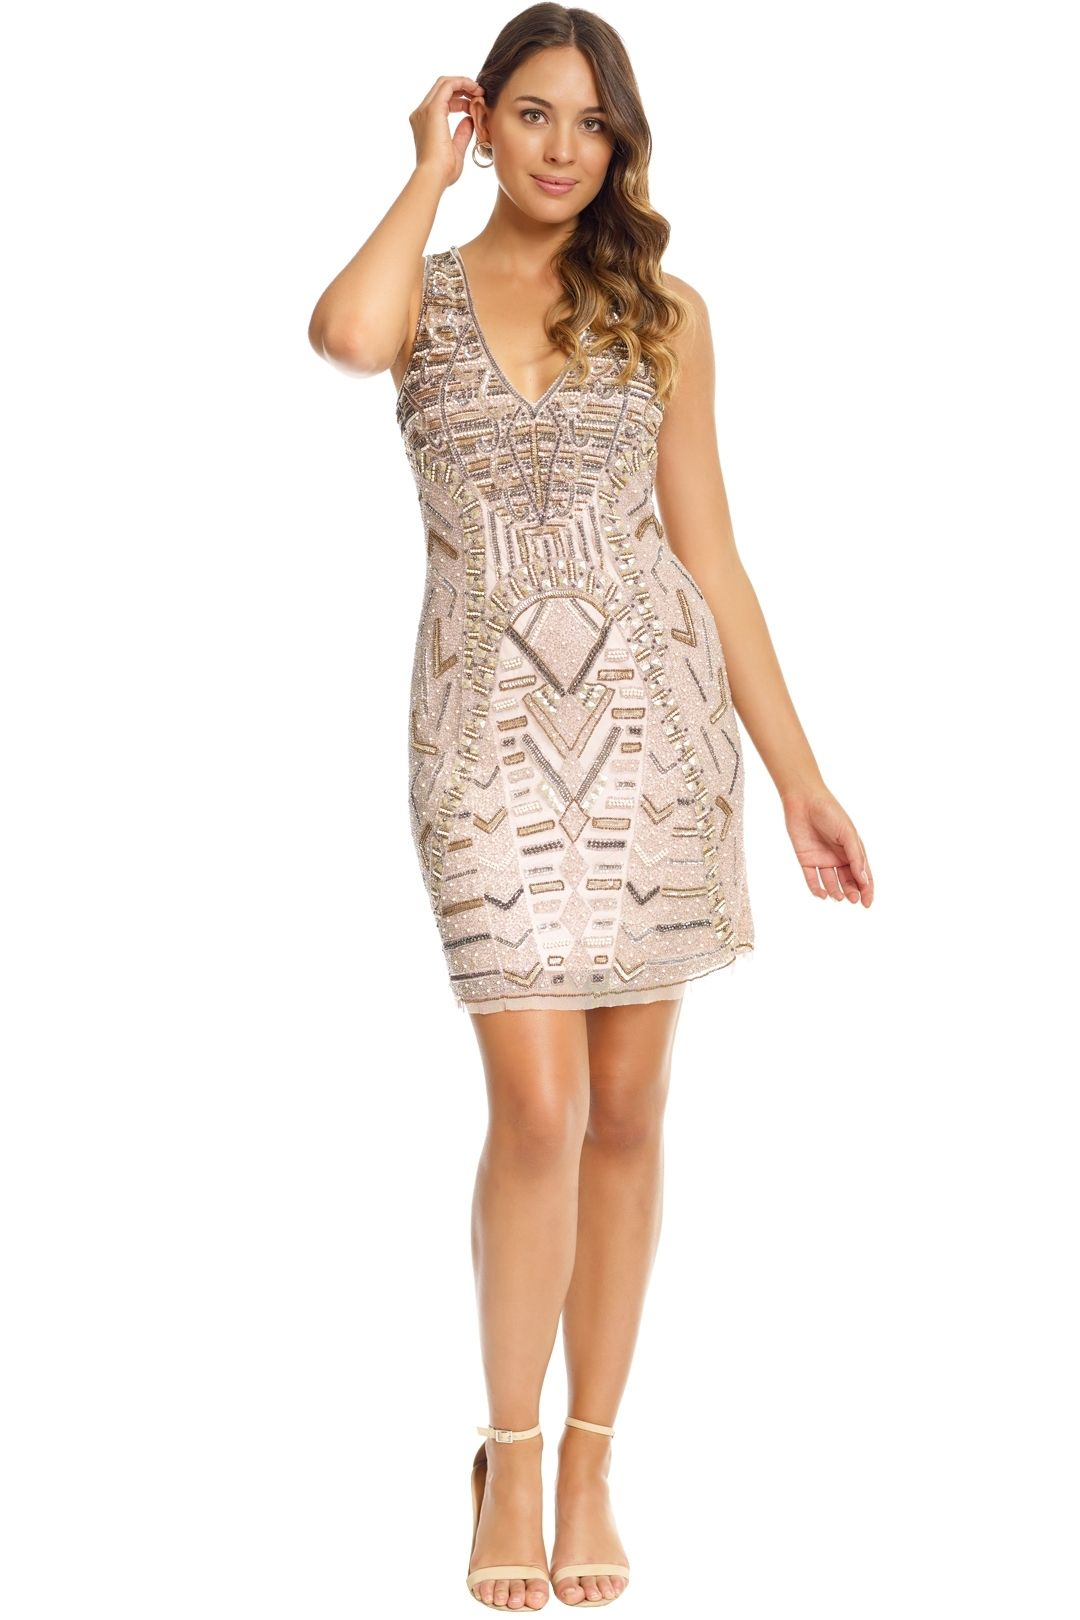 Grace and Blaze - All That Shines Dress - Blush - Front